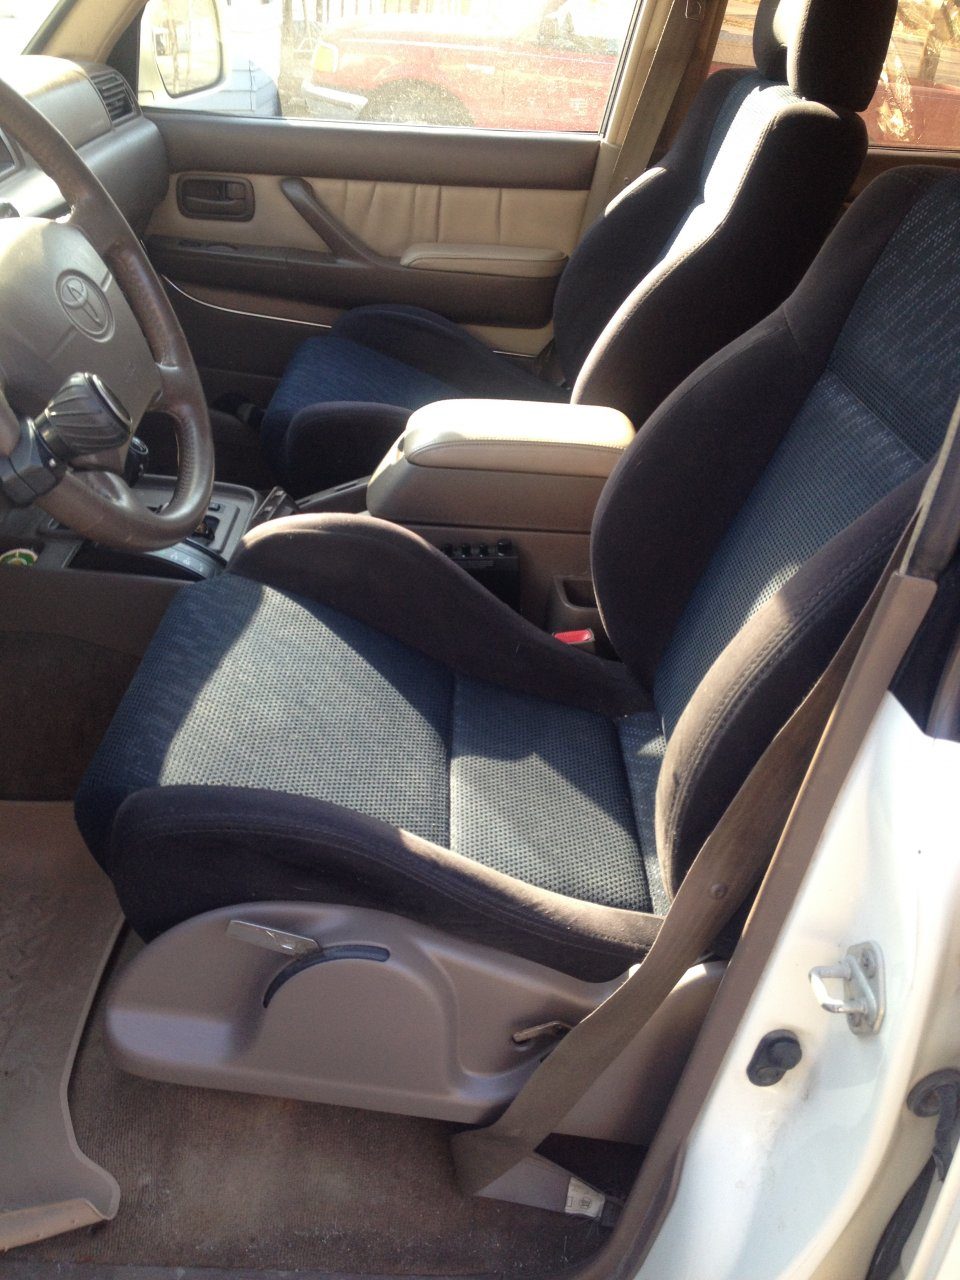 4Runner Seat Covers >> Replacement Seat Options and Mounting Ideas for 80-Series ...